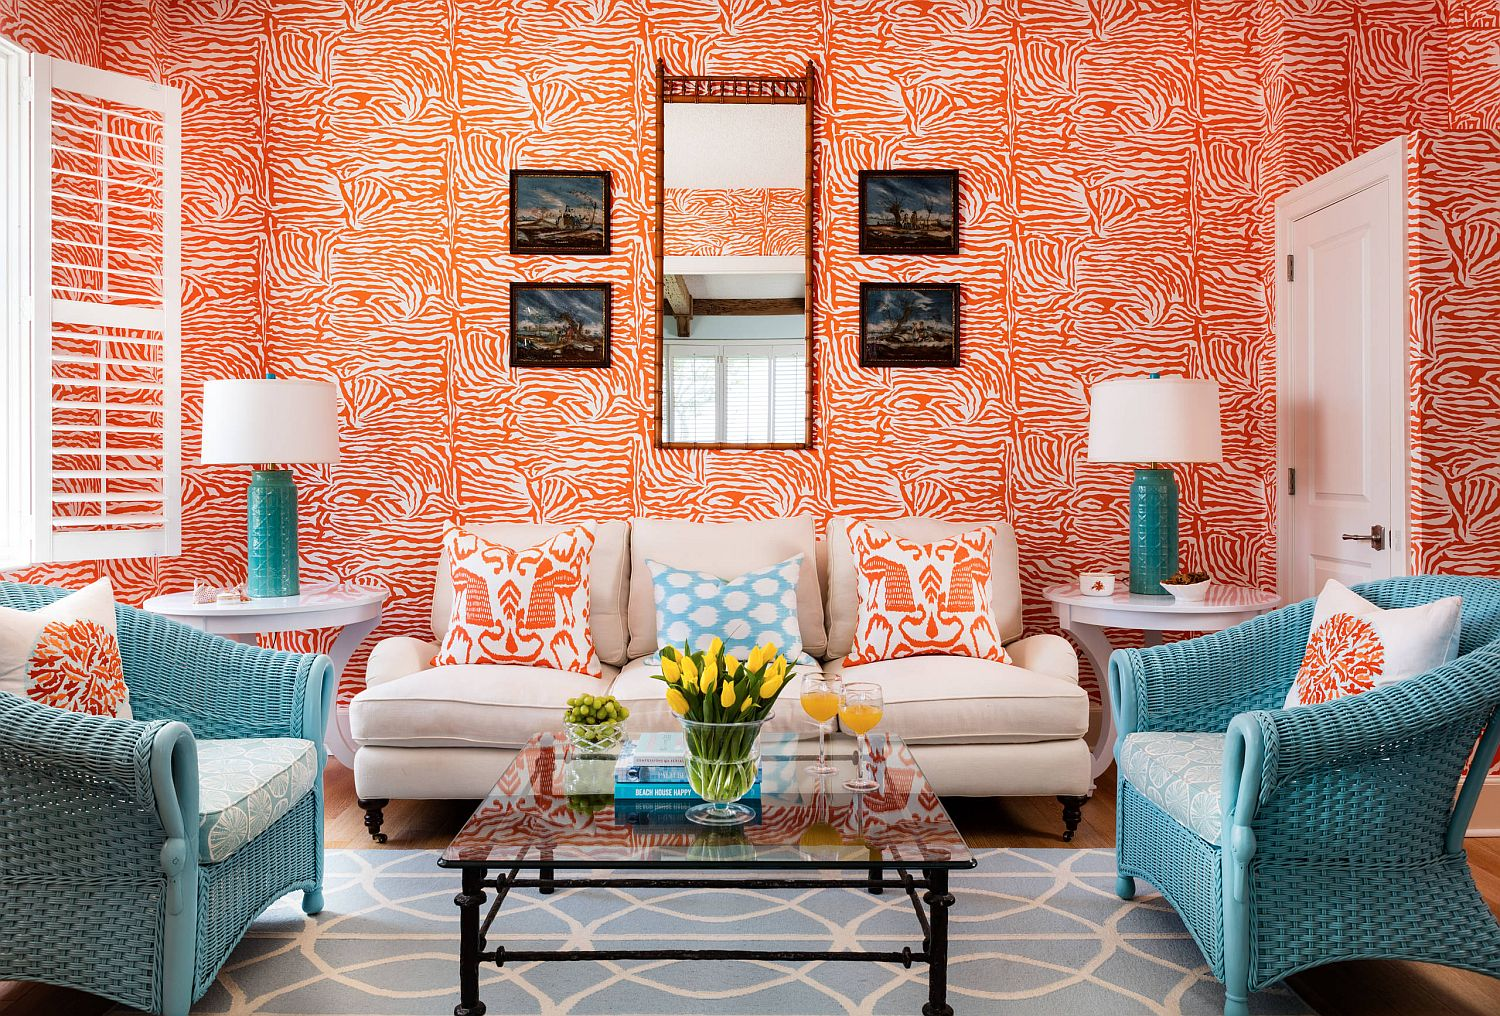 Awesome-use-of-orange-in-the-modest-tropical-living-room